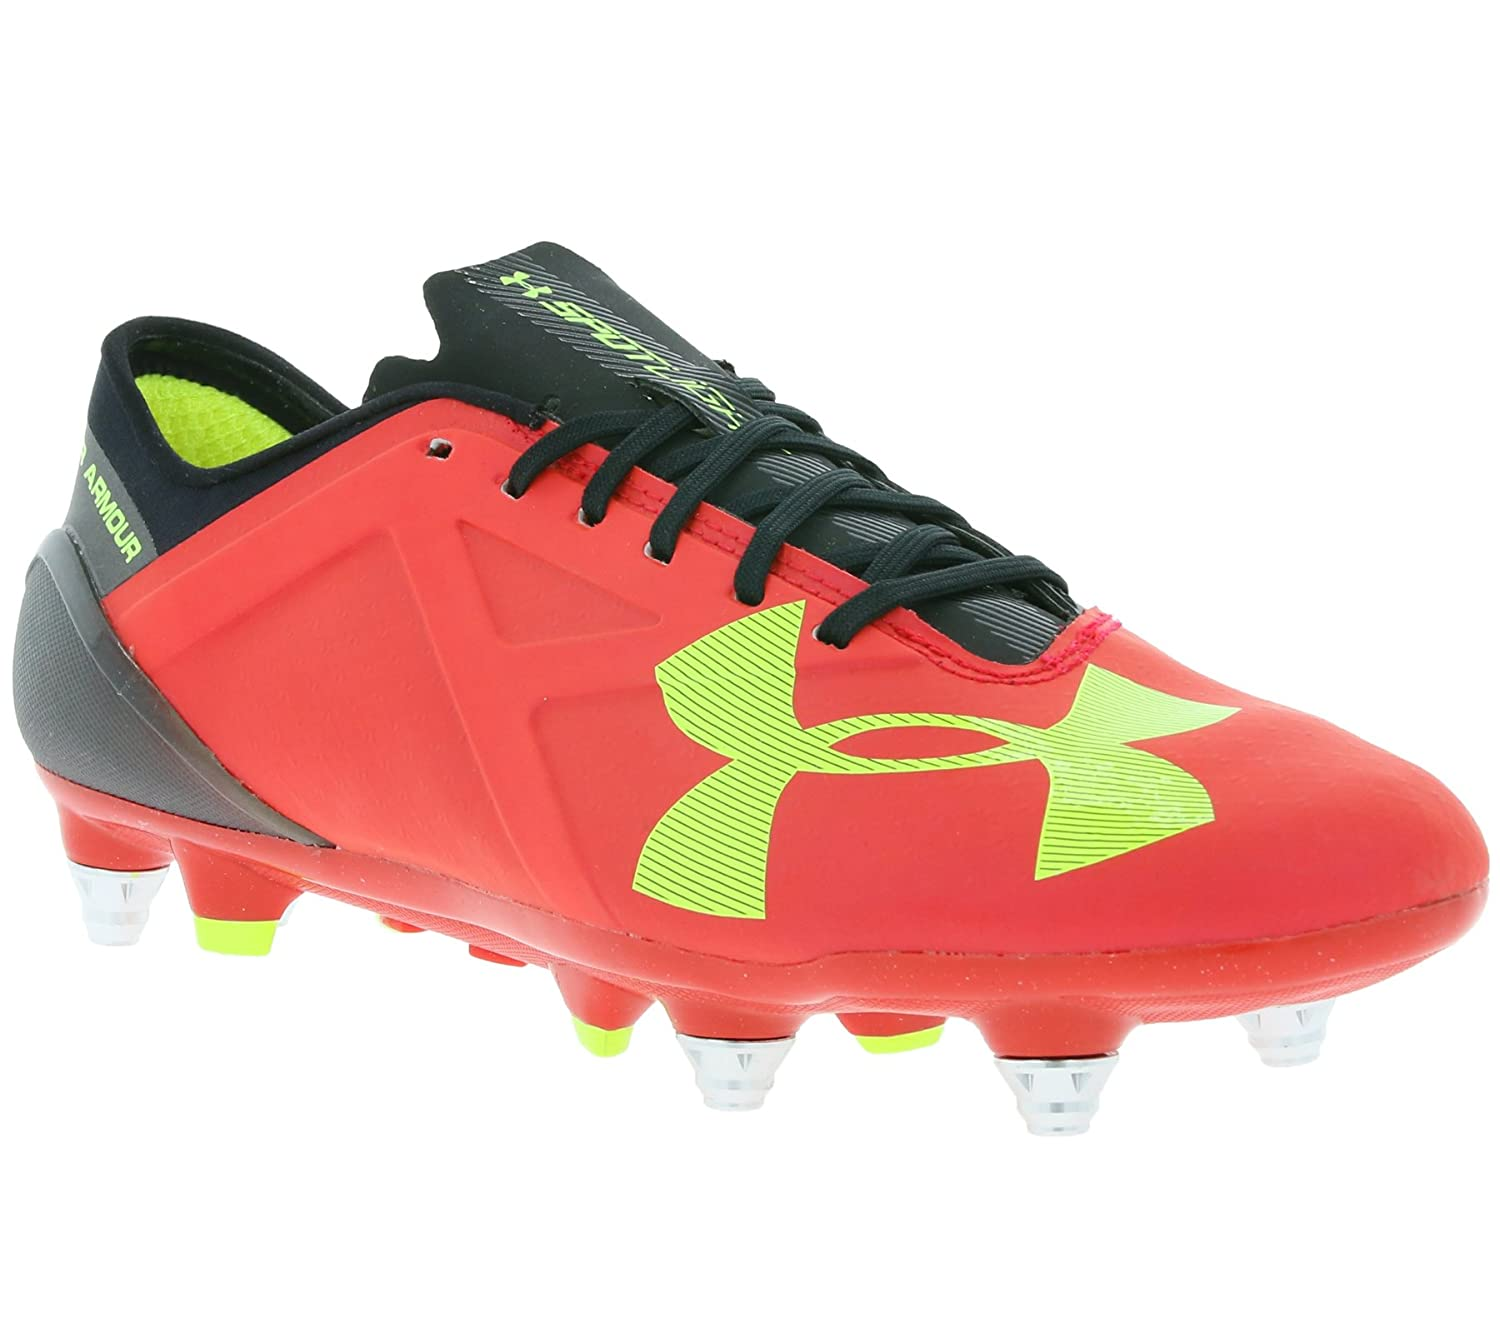 Under ArmourメンズUAスポットライトハイブリッドSoccer Cleats B015D8L962 6 D(M) US|Rocket Red/High-vis Yellow/Black Rocket Red/High-vis Yellow/Black 6 D(M) US